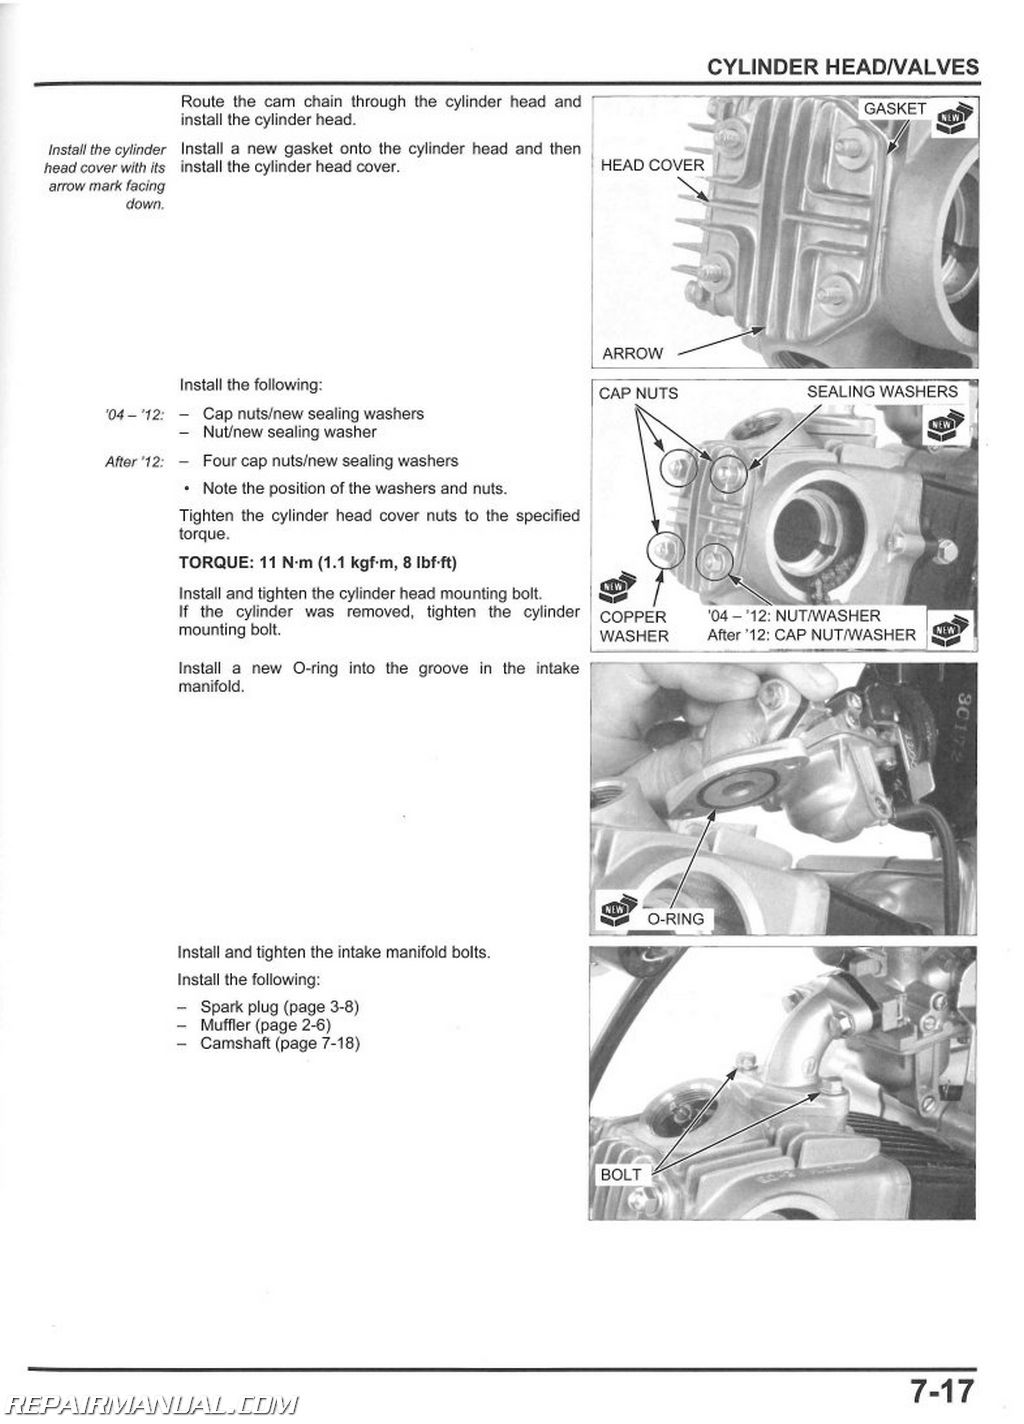 Honda Crf 230 Owners Manual